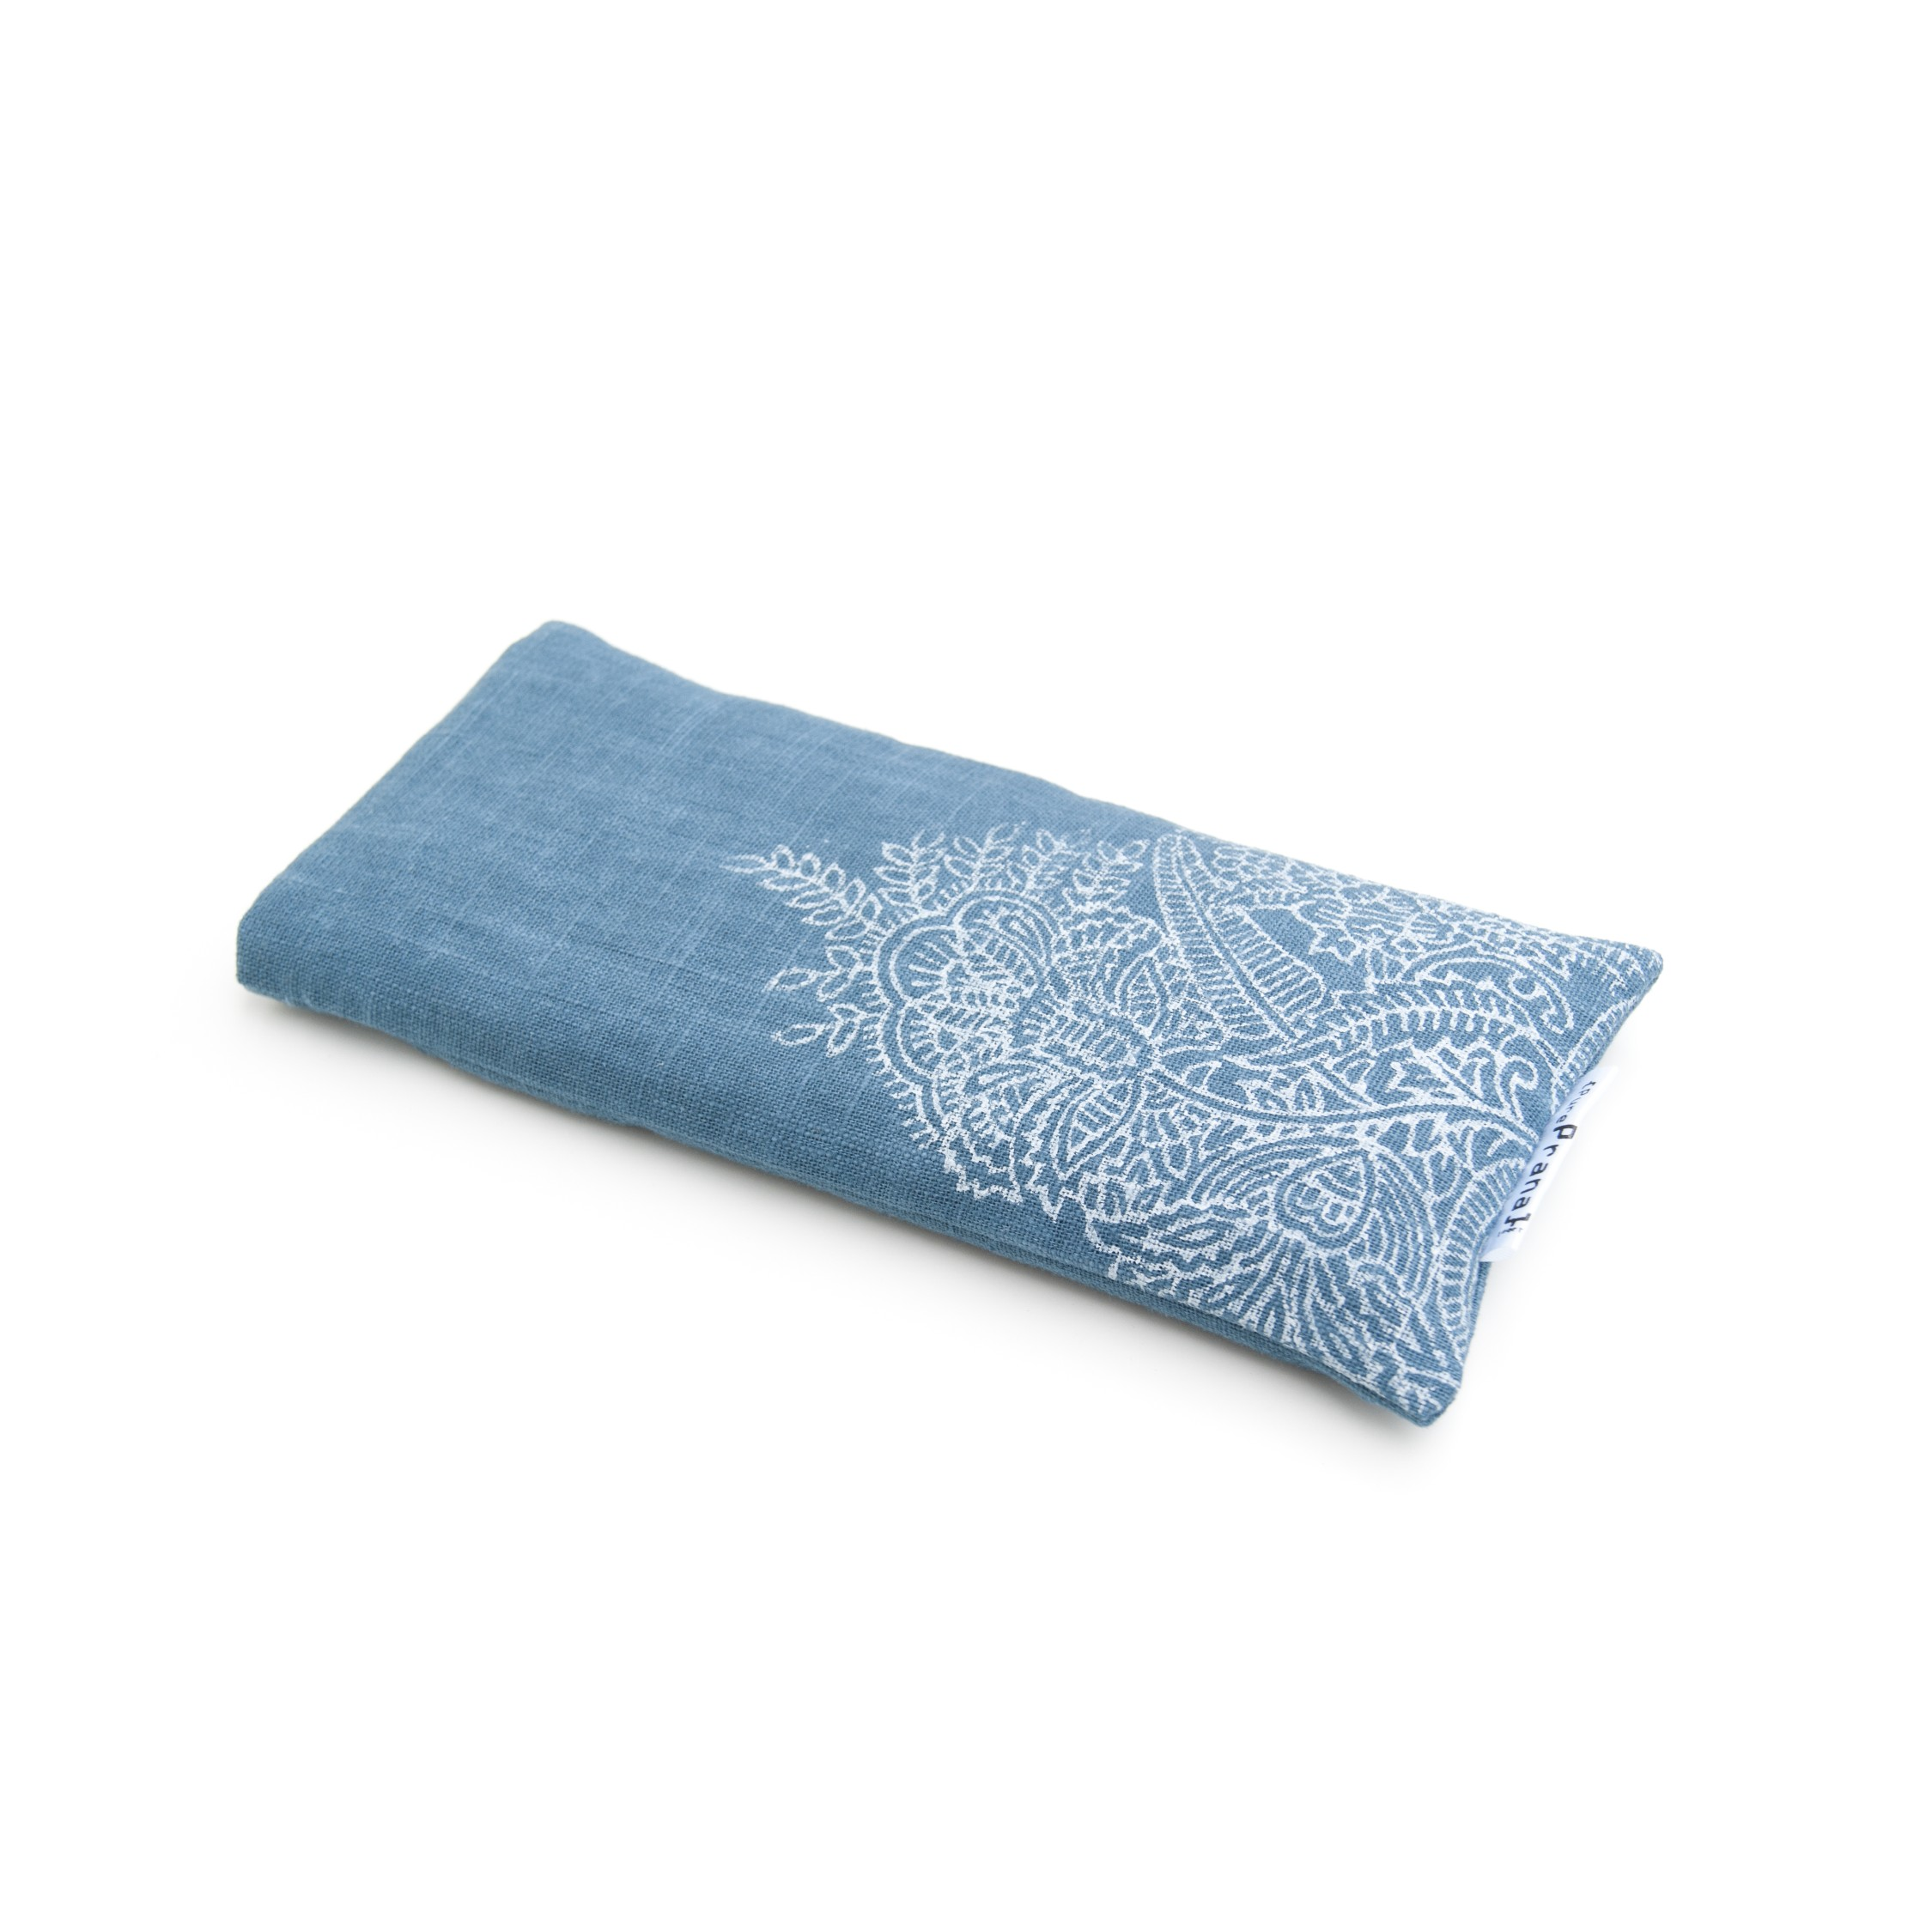 Crystal eye pillow by Pure Prana Label